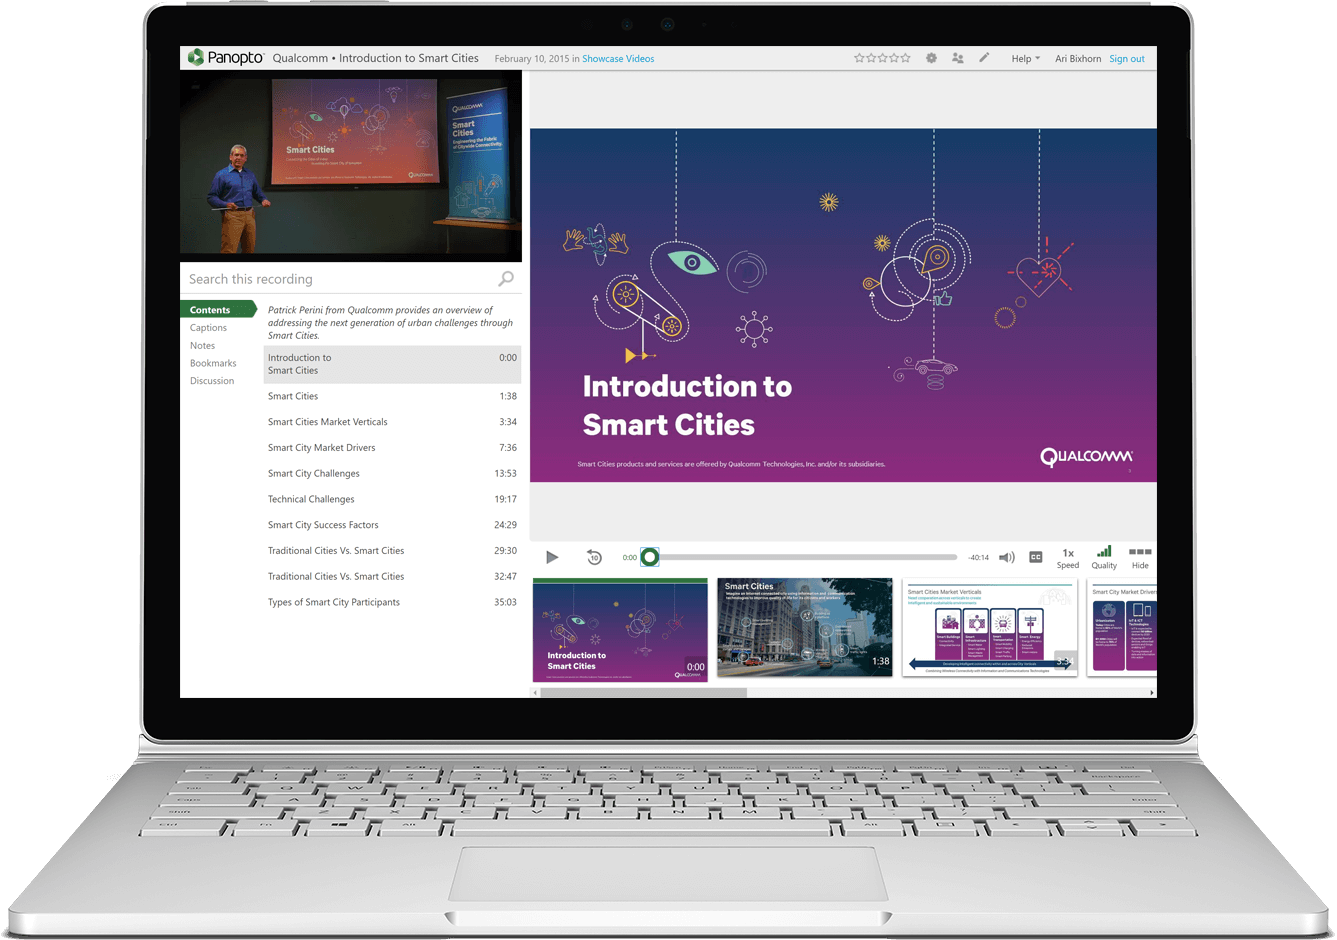 Qualcomm's employee training and onboarding videos created in Panopto